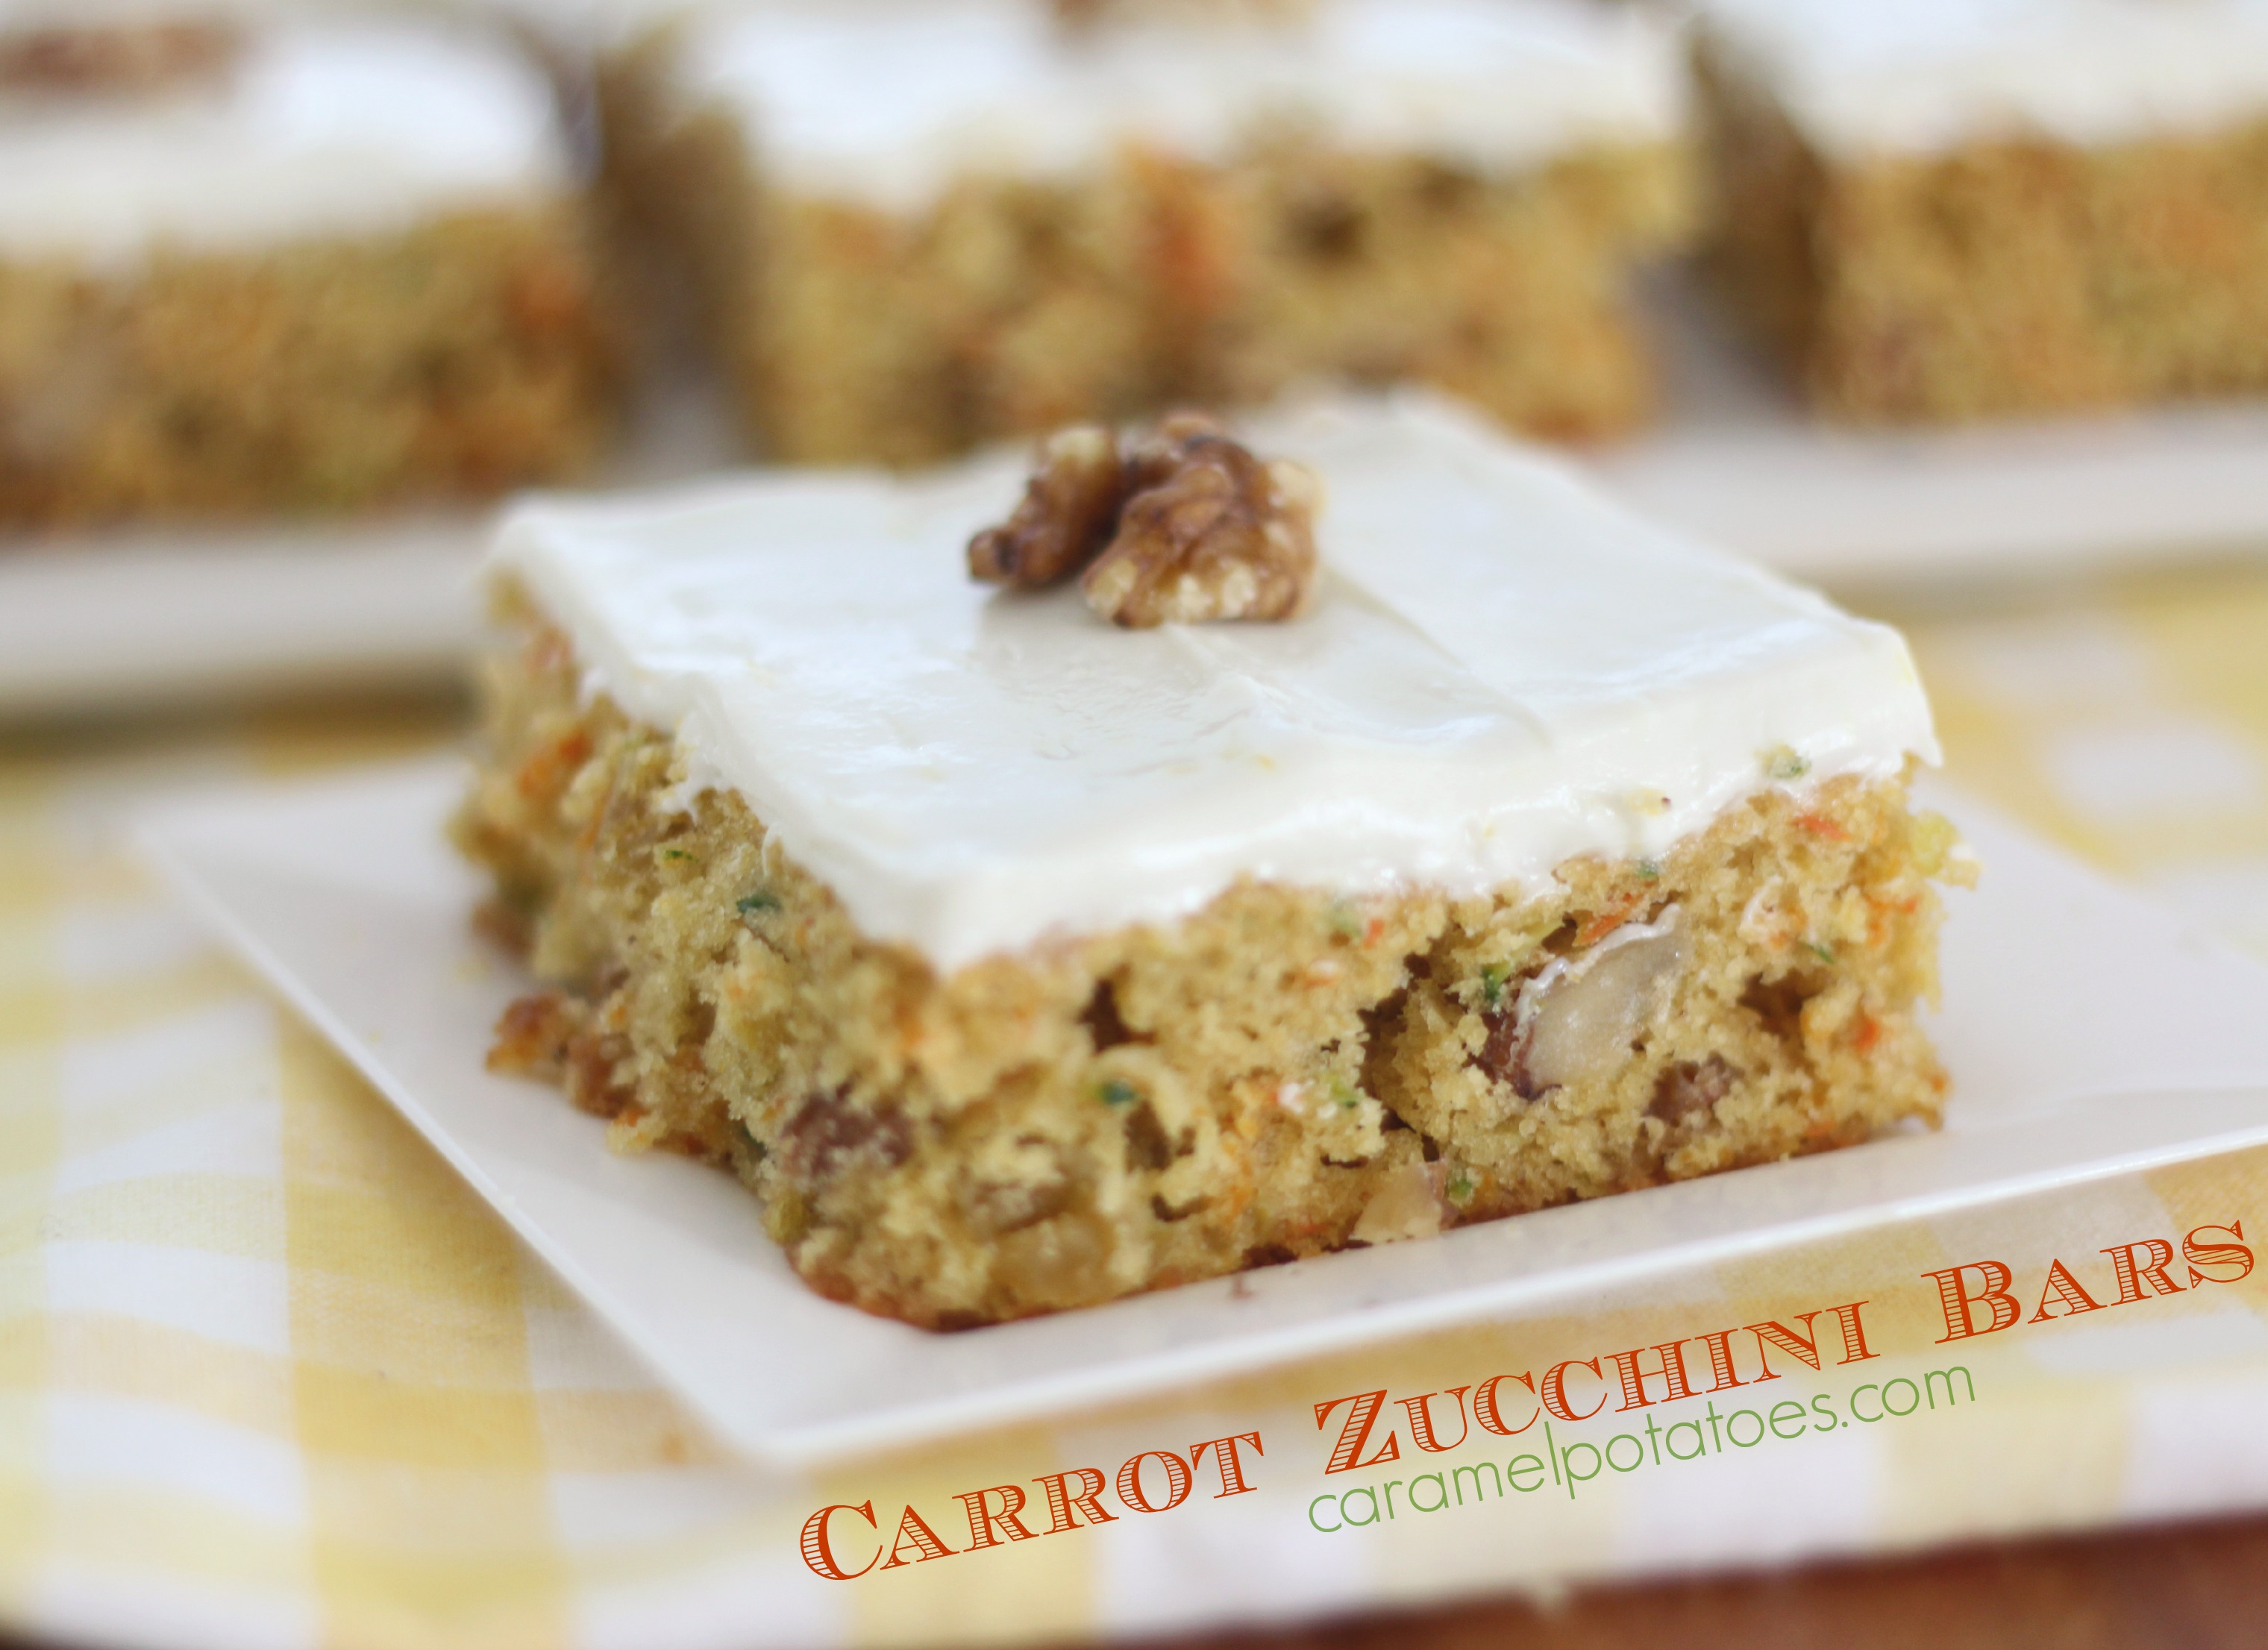 carrot and zucchini bars carrot zucchini bars with carrot and zucchini ...